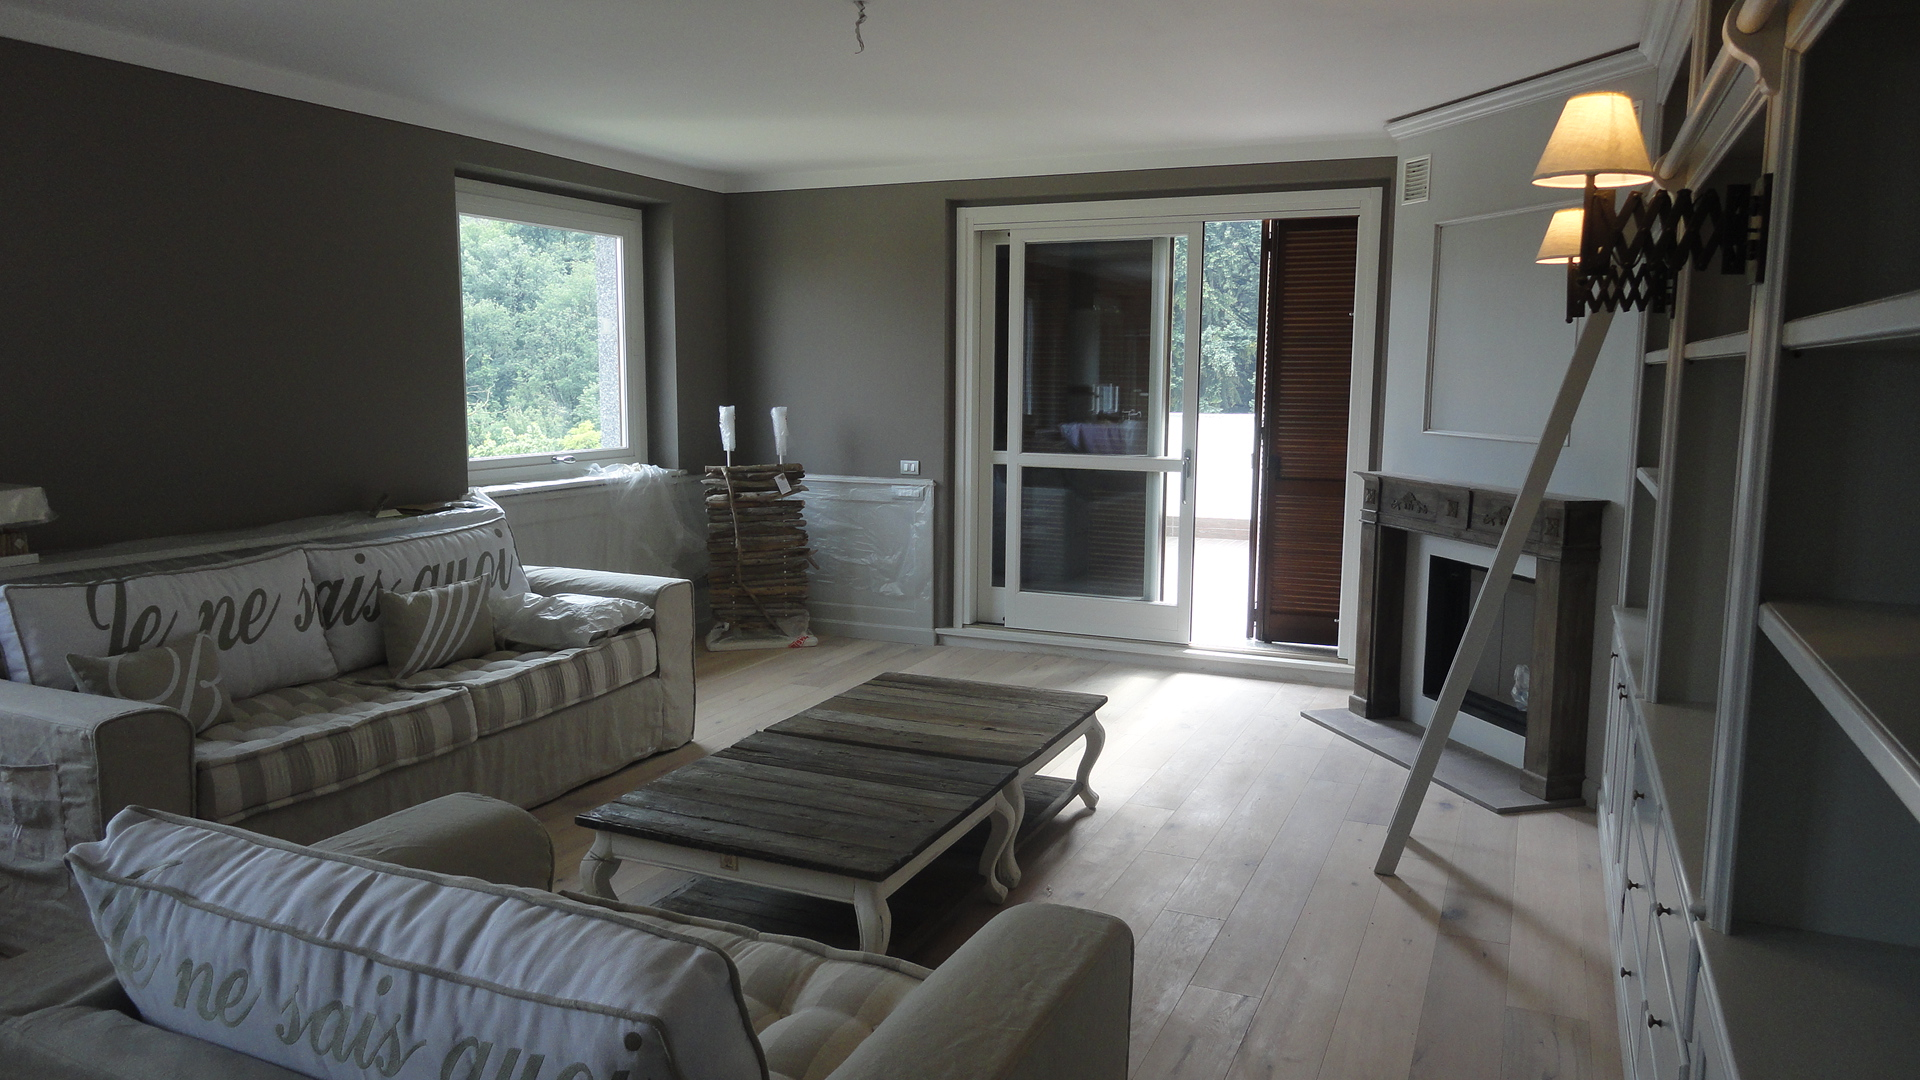 Arredamento Country Lissone.Home La Maison Des Reves